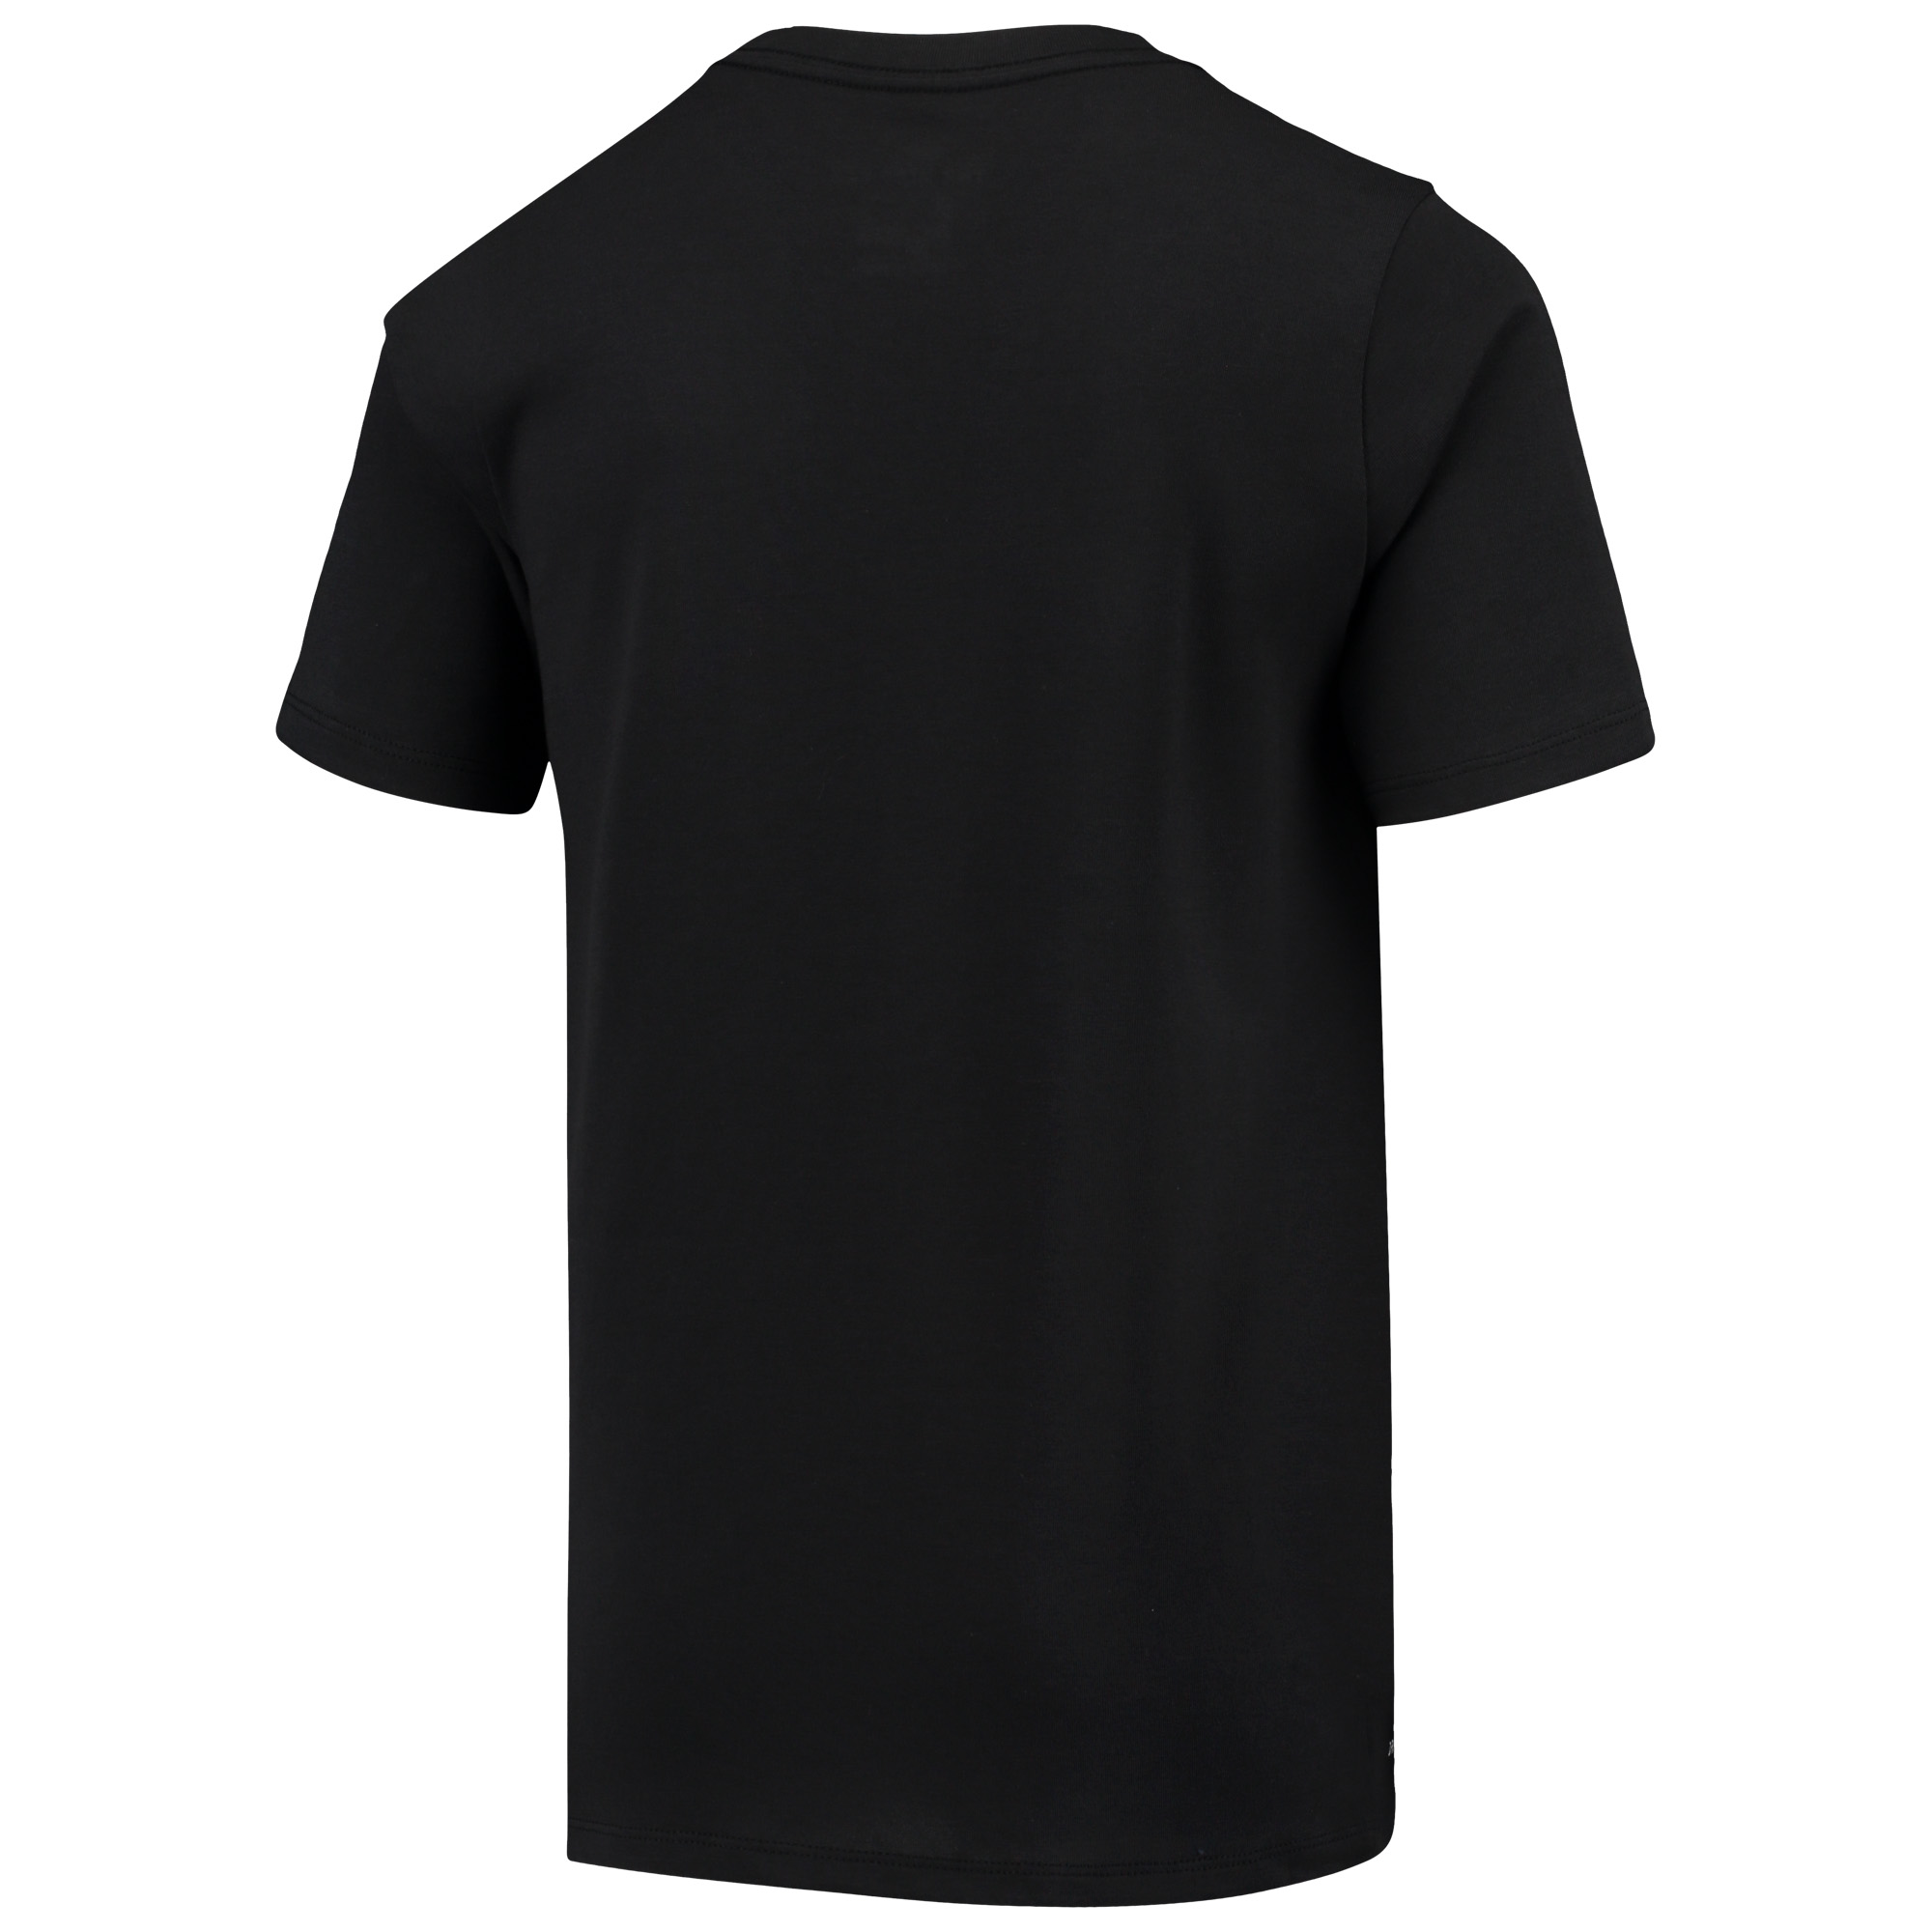 f32da12a46b Carolina Panthers Nike Youth Icon Performance Short Sleeve T-Shirt - Black  - Walmart.com